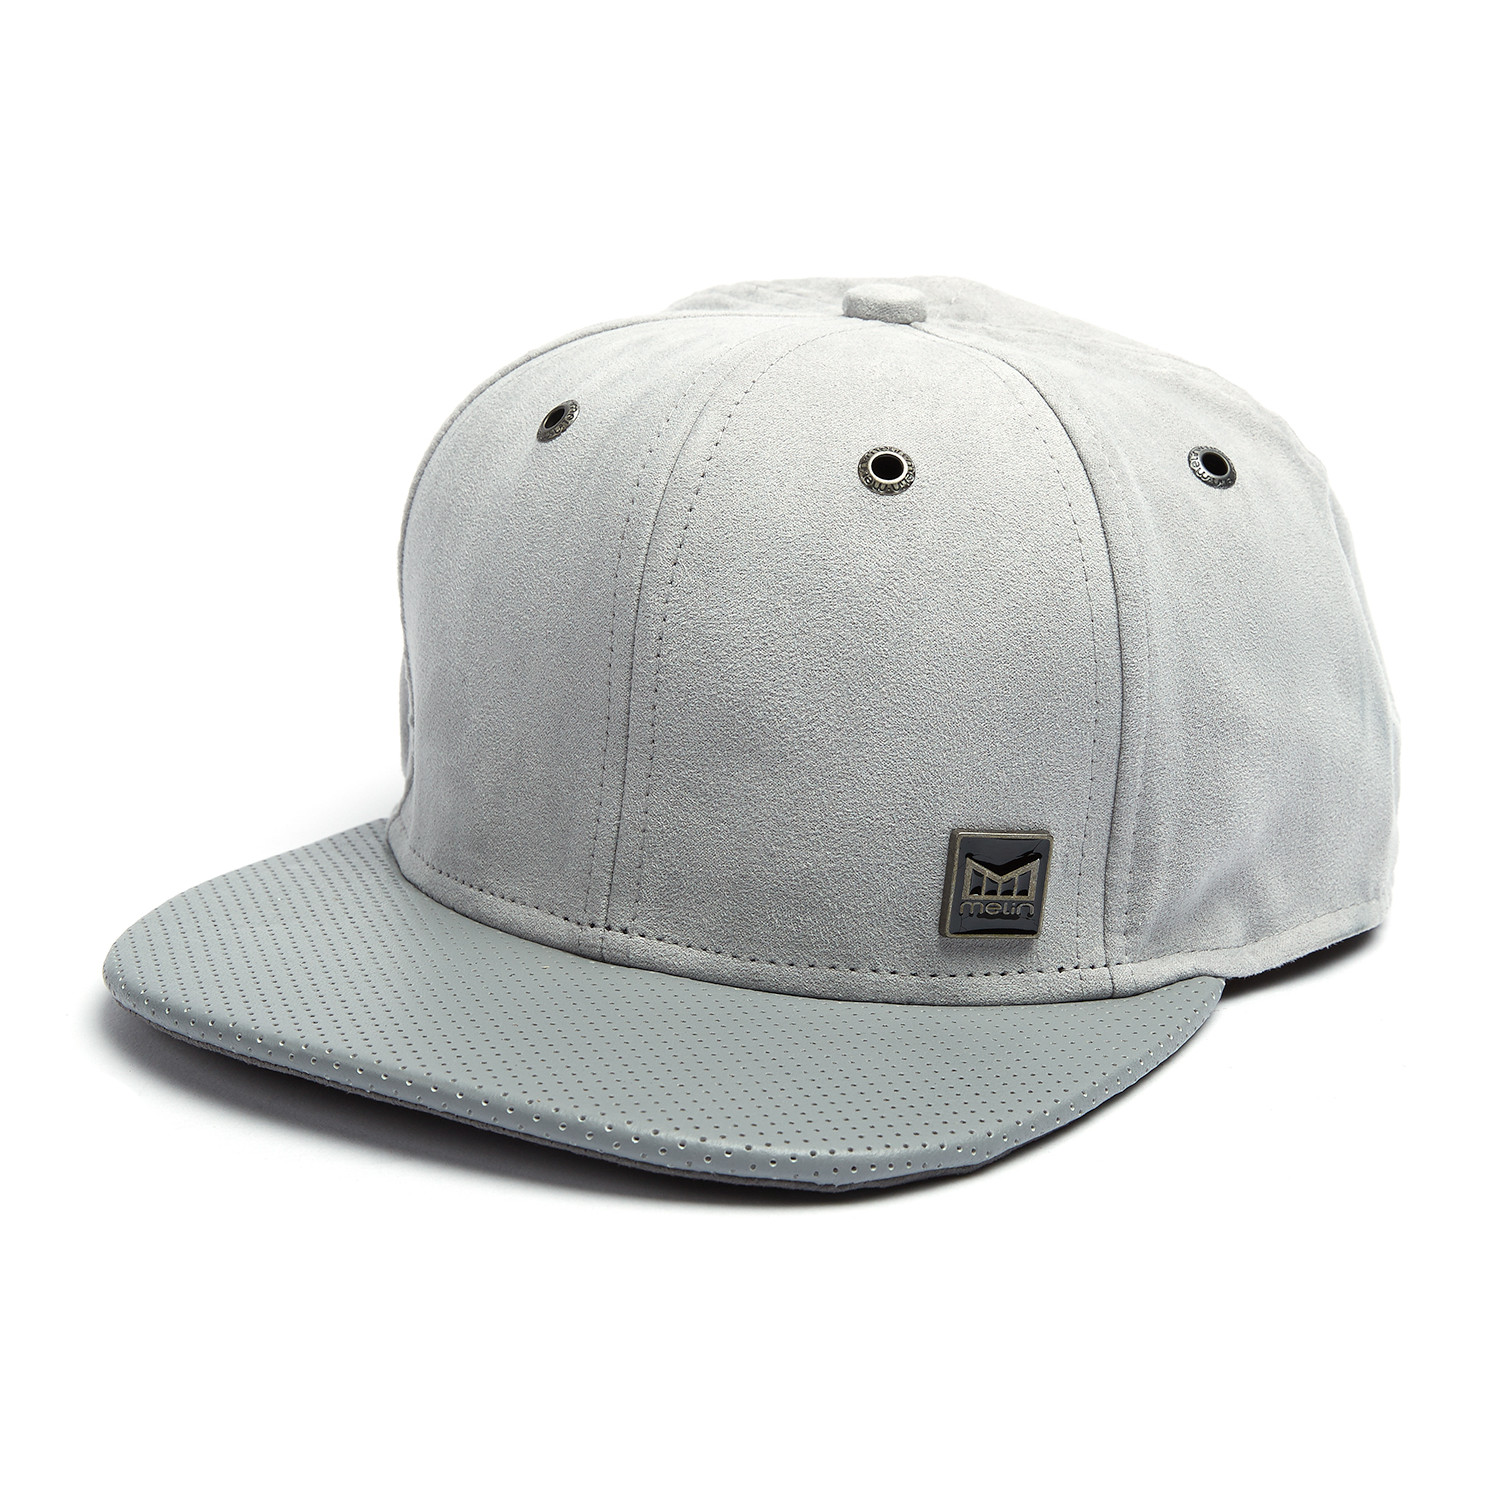 hot sale online 26f76 c7117 The Affair 6-Panel Hat    Glacier Grey